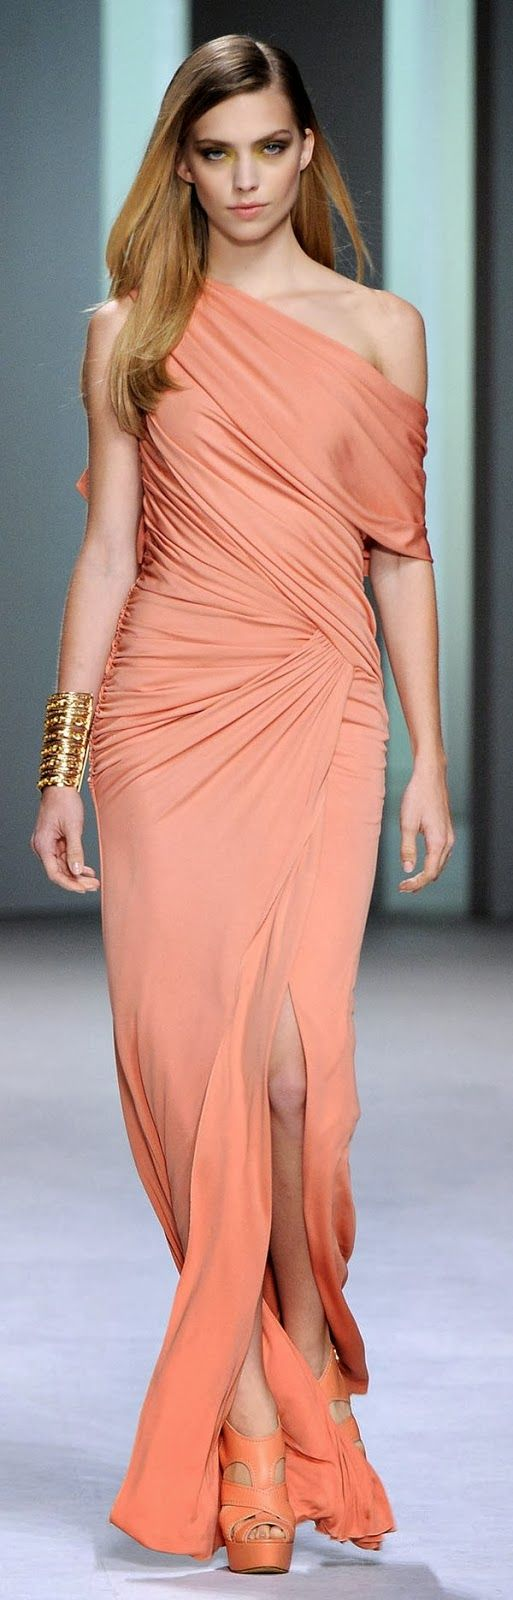 Elie Saab coral color dress. | Fashion | Pinterest | Coral colored ...